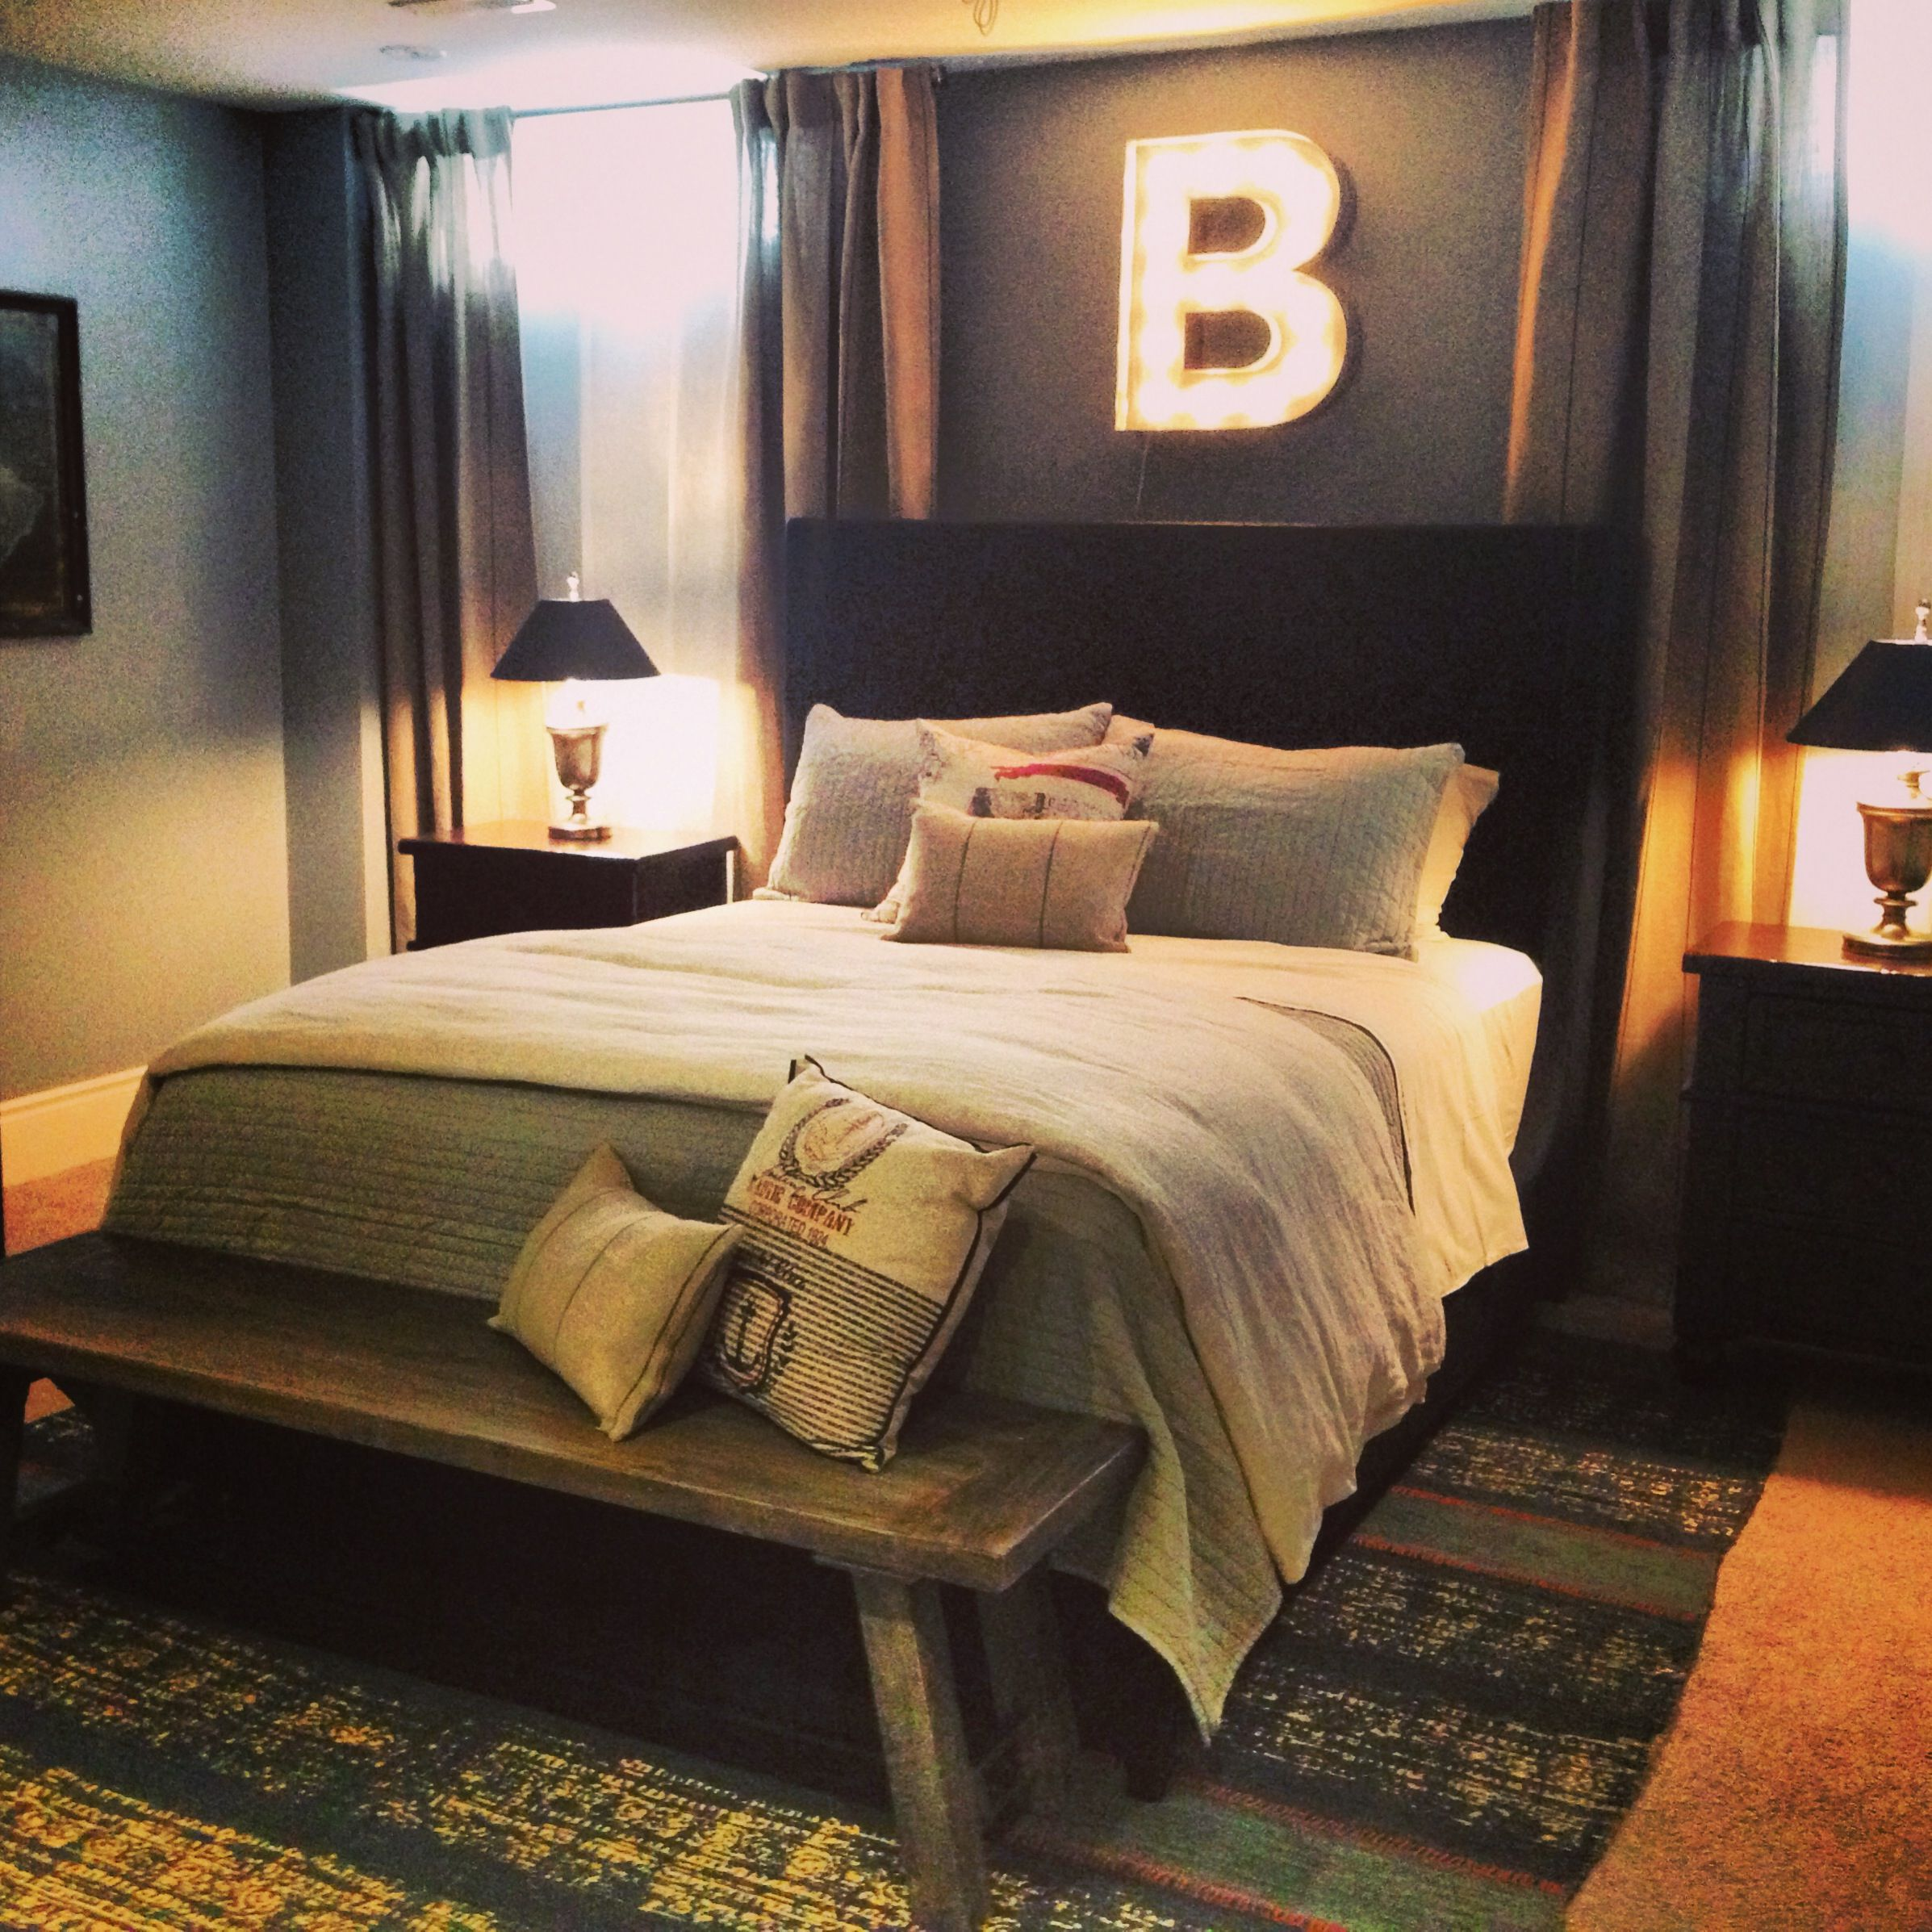 Basement bedroom for a 15 year old boy for the home pinterest - Boys basement bedroom ...